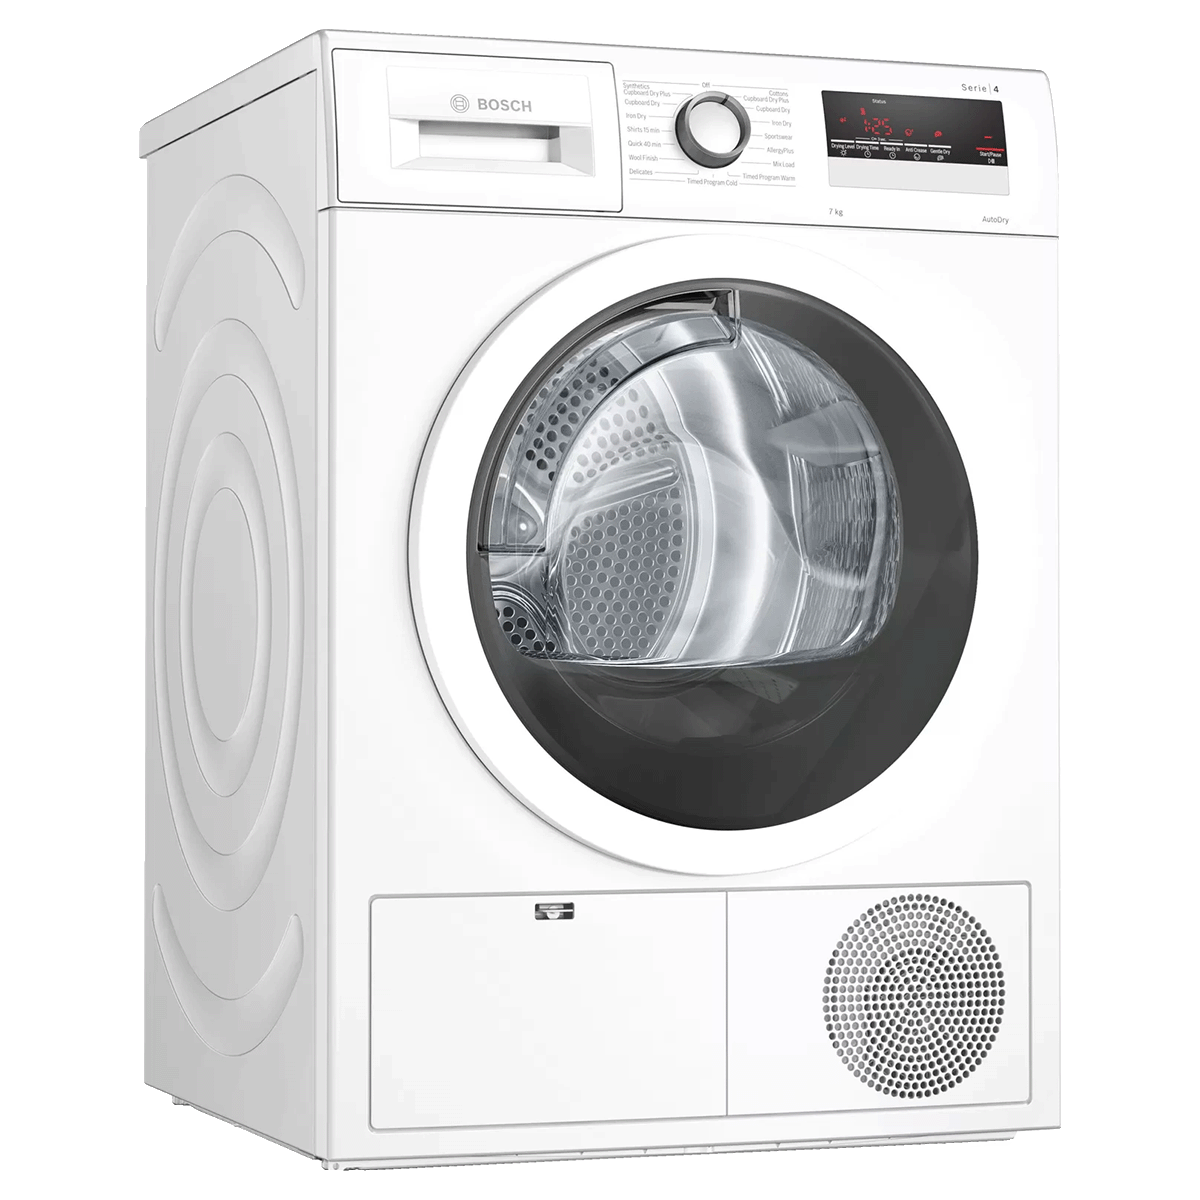 Bosch 7 kg Fully Automatic Front Loading Condenser Dryer (AllergyPlus Programme, WTN86203IN, White)_1